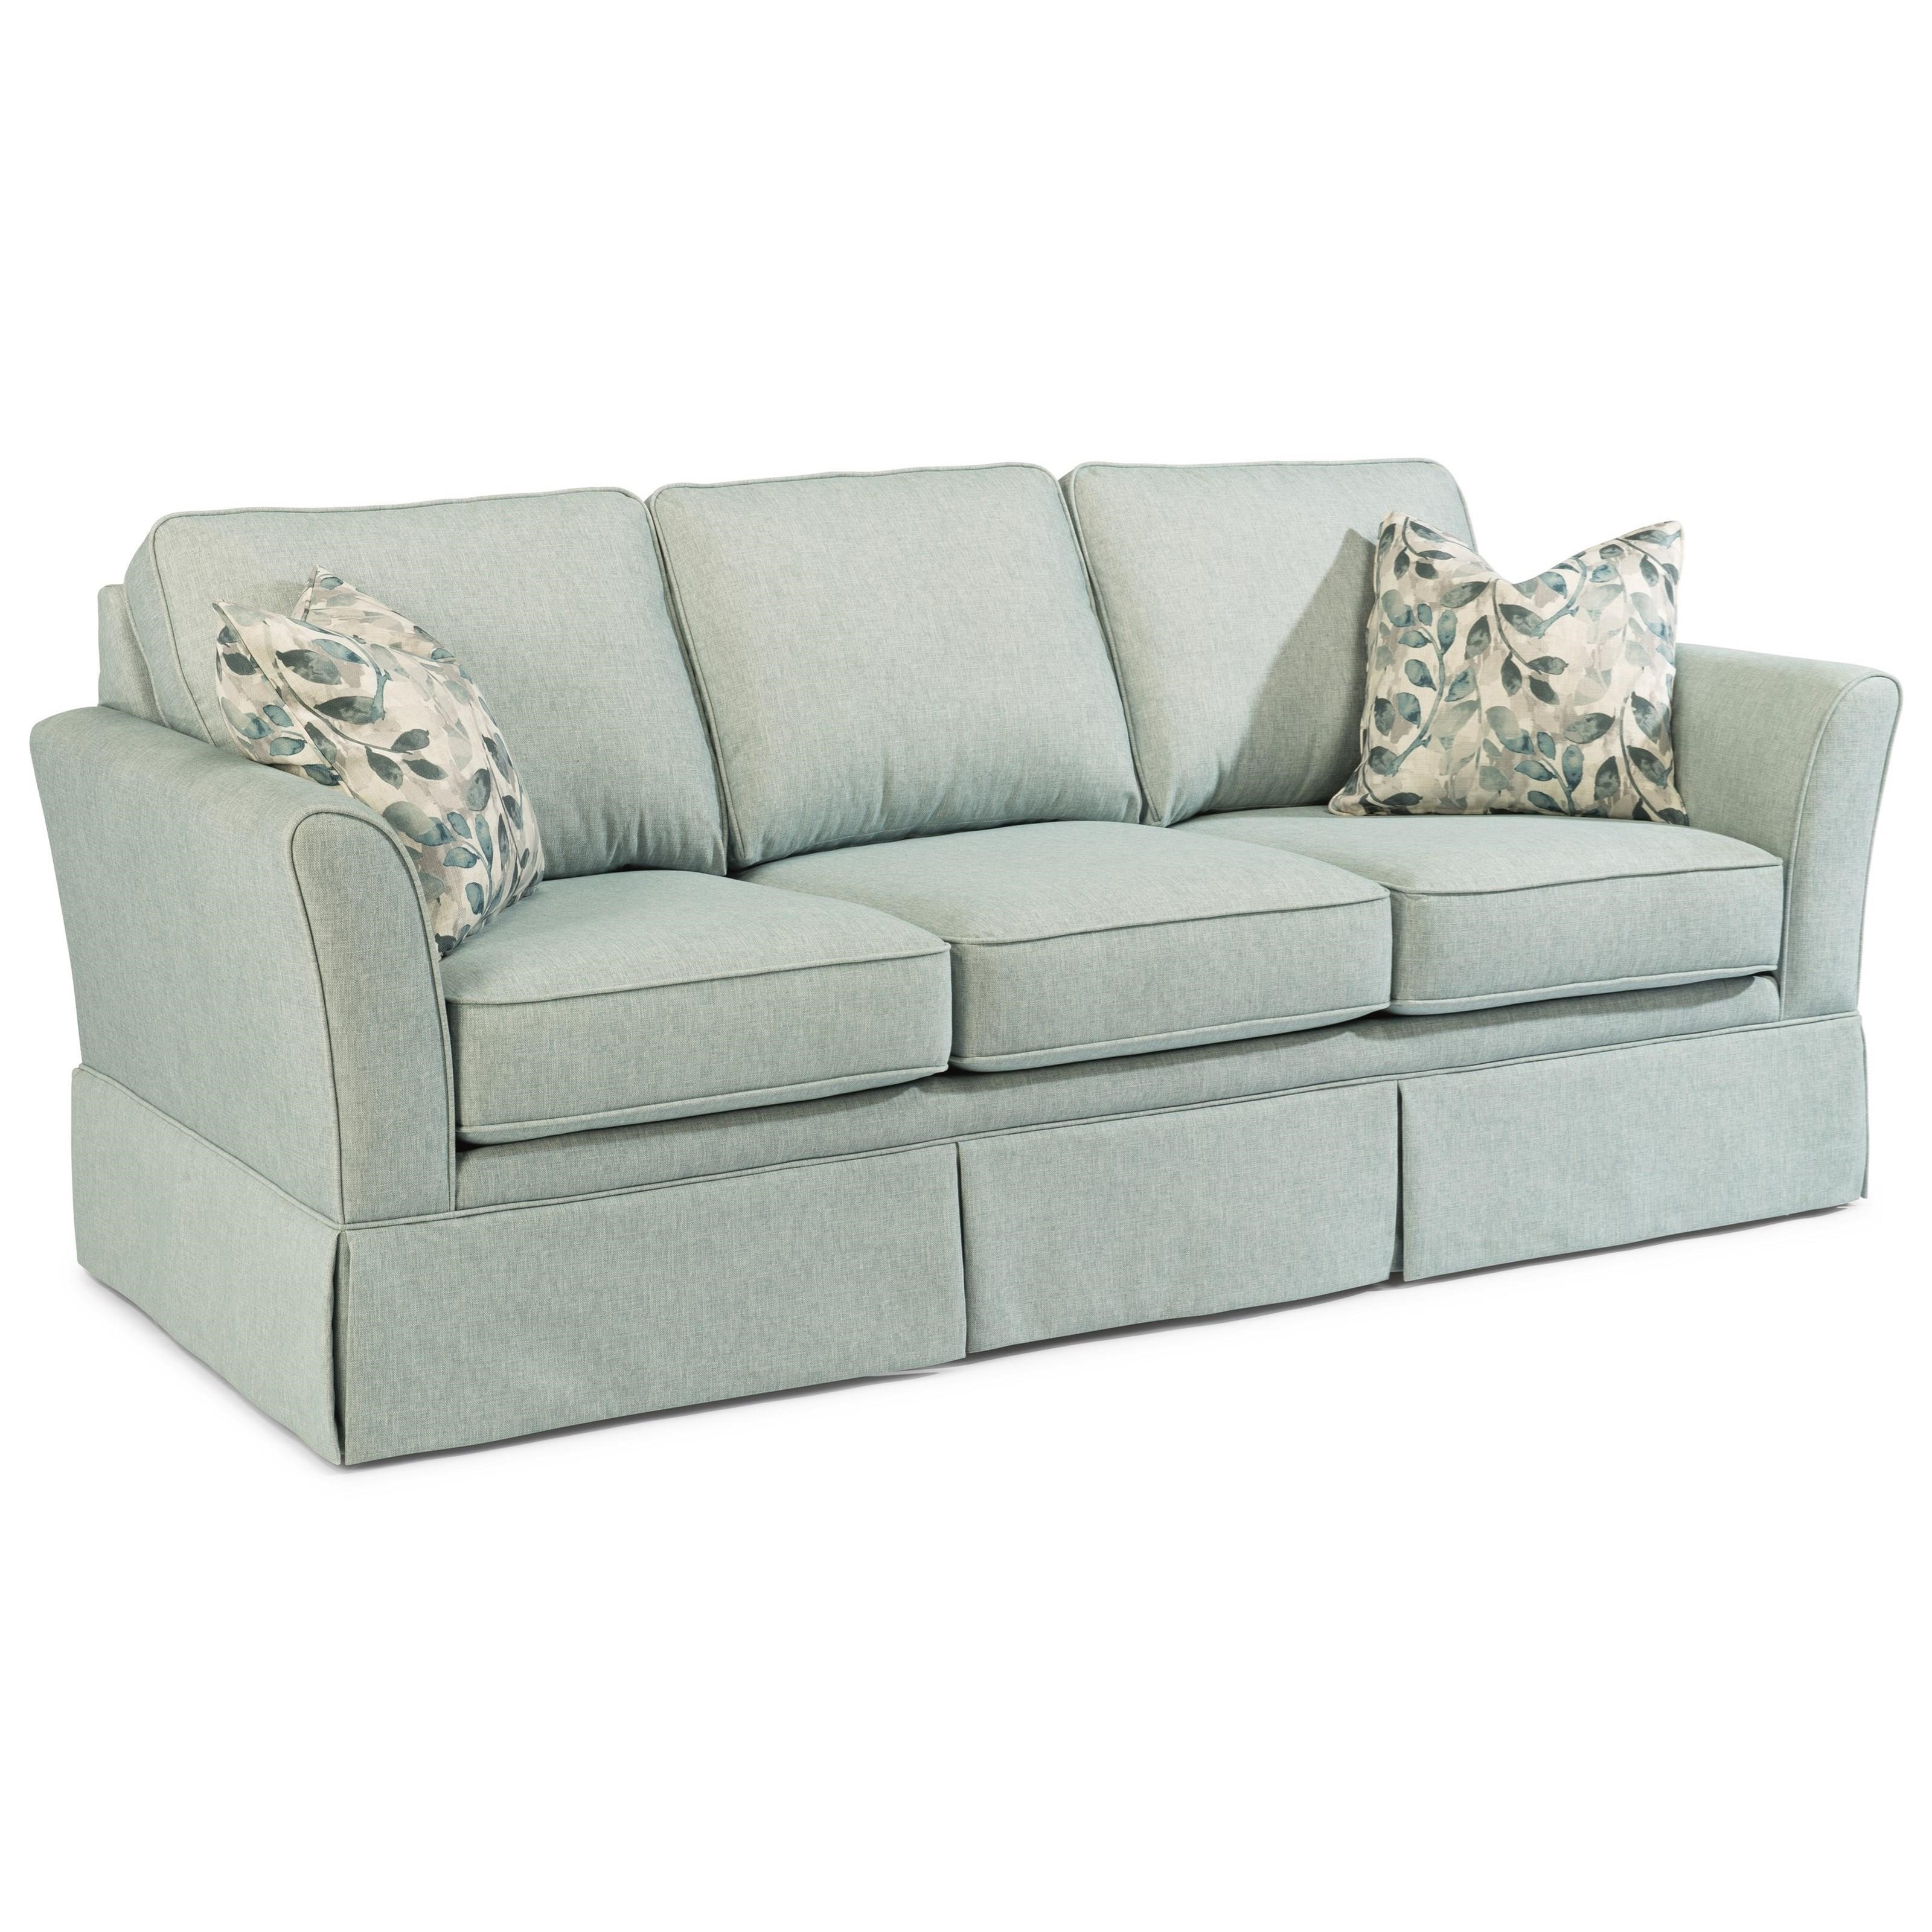 Fiona Sofa  by Flexsteel at VanDrie Home Furnishings